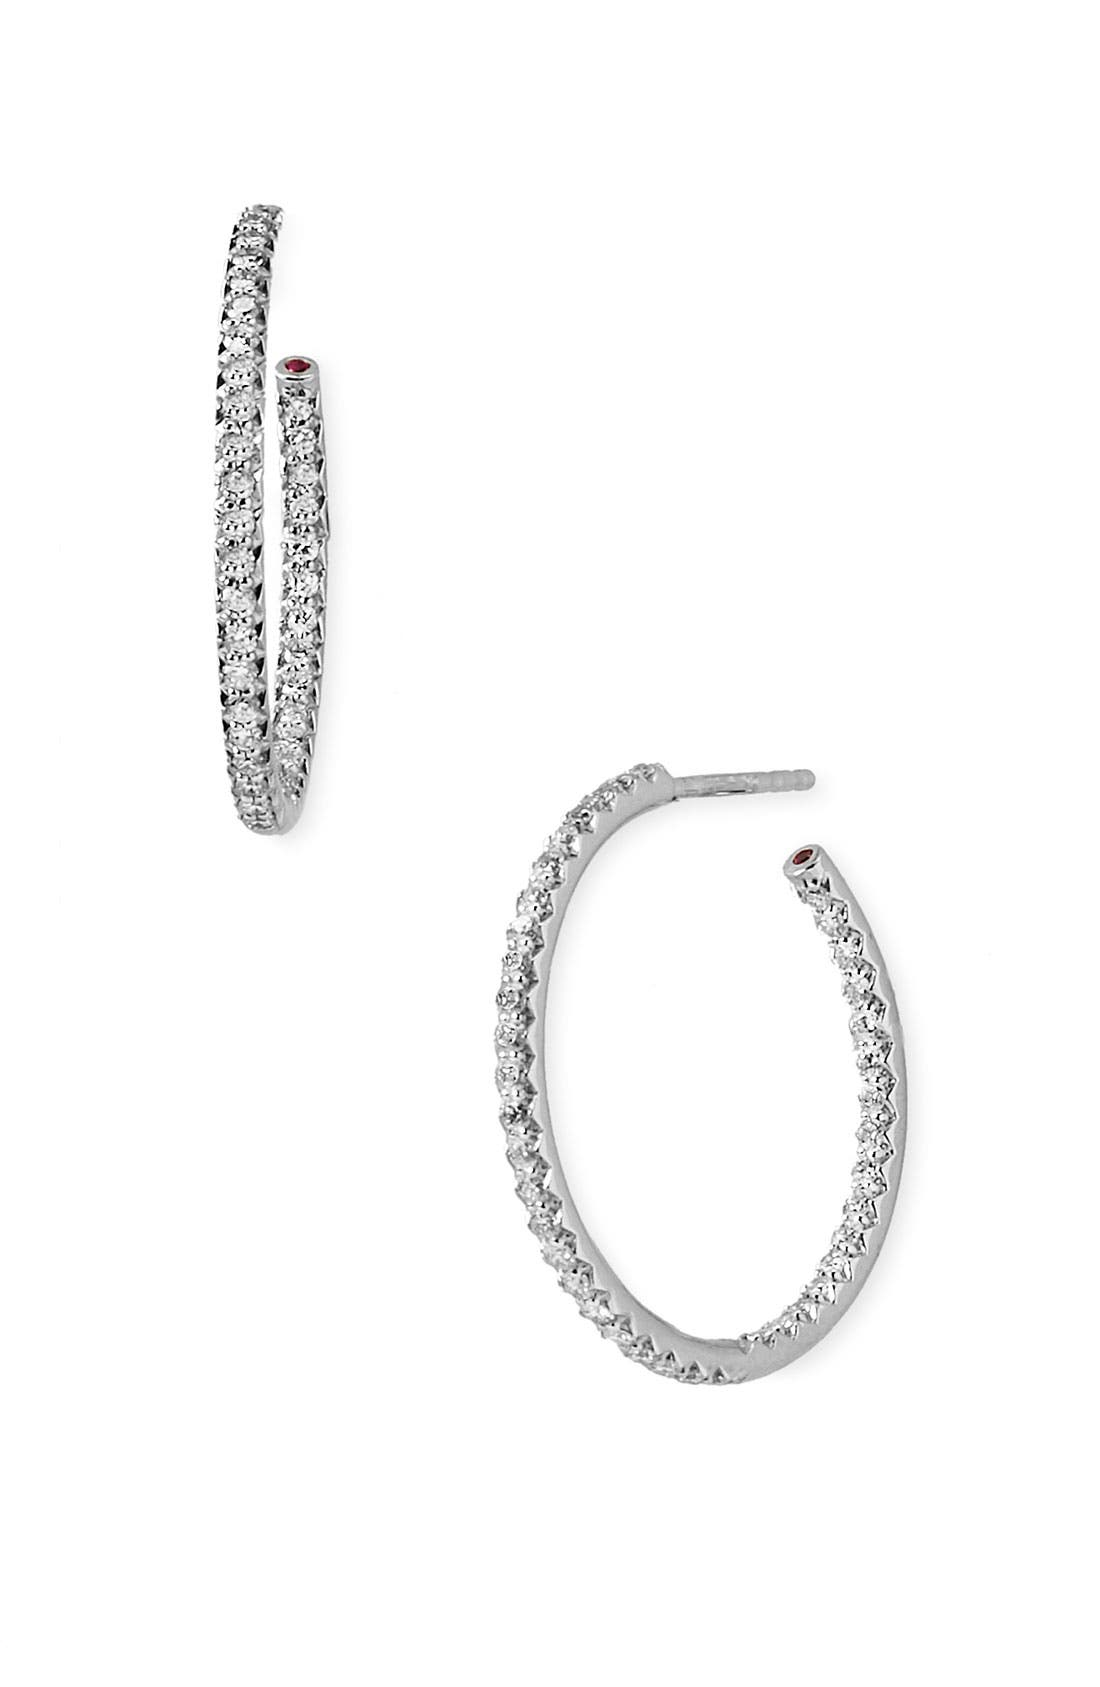 Main Image - Roberto Coin Medium Diamond Hoop Earrings